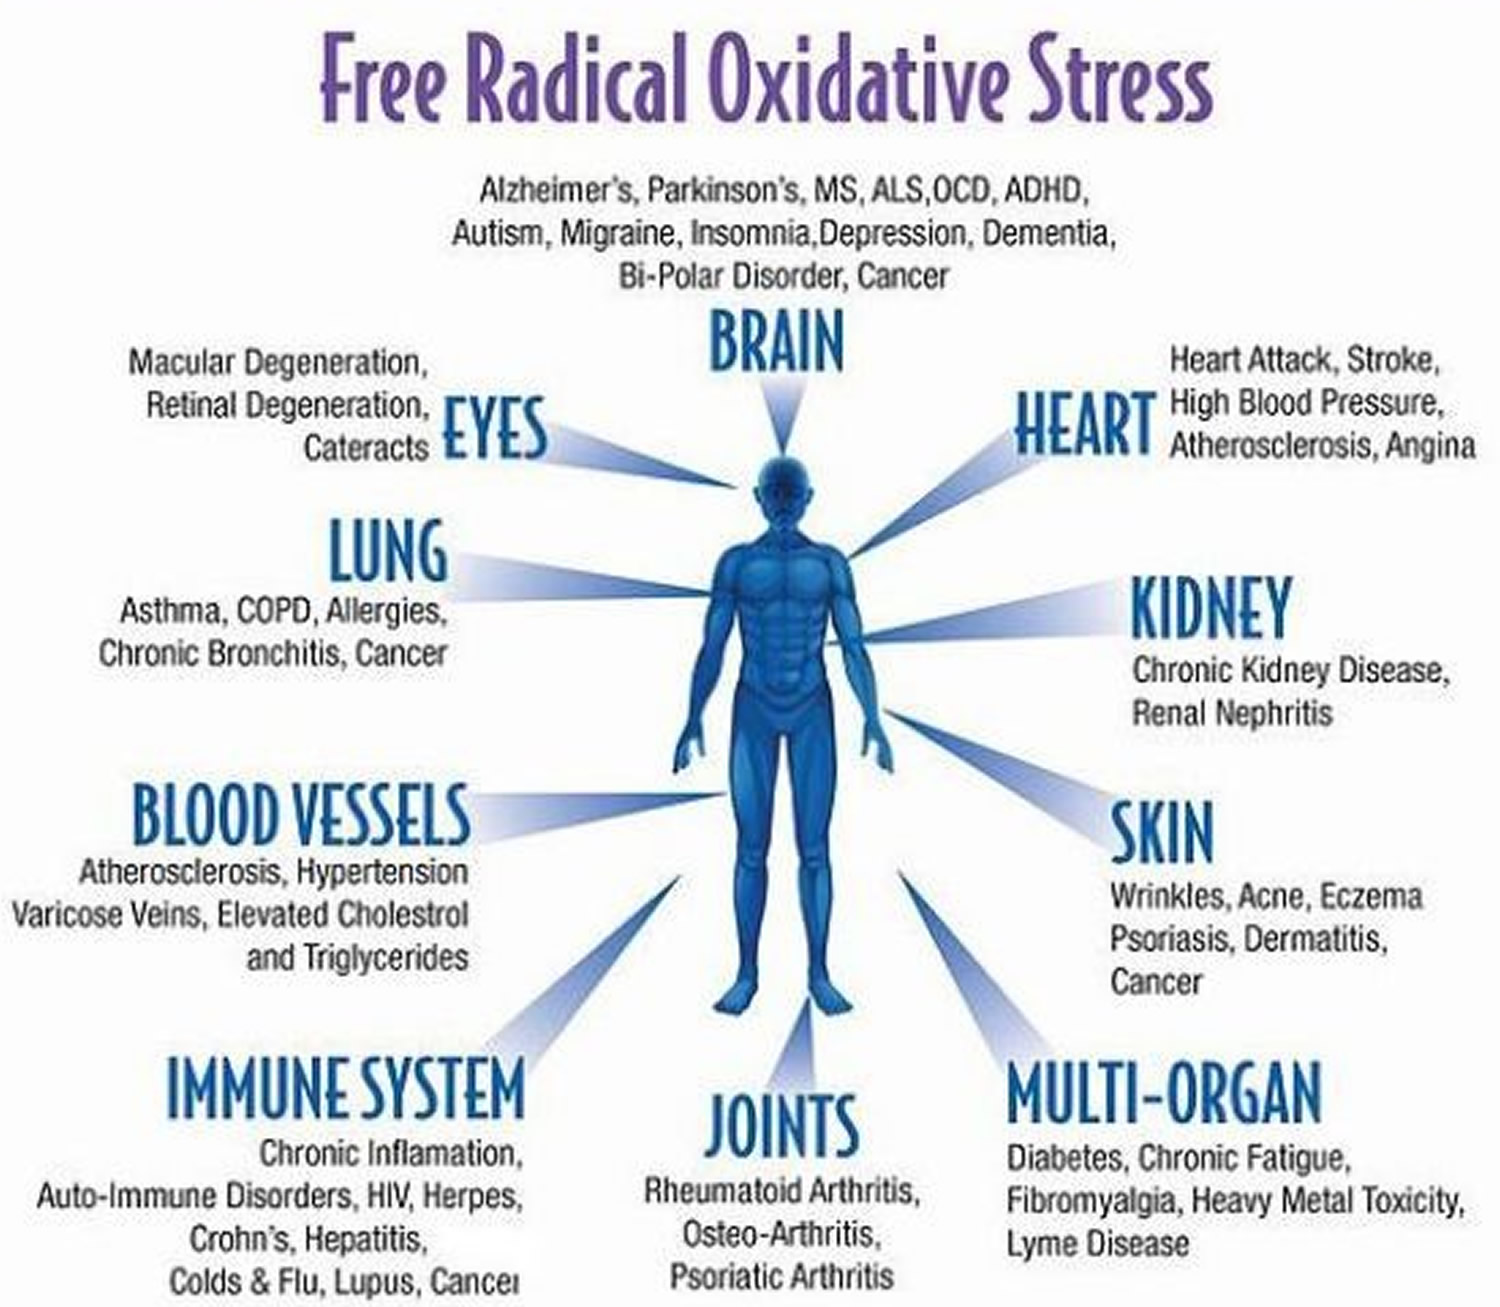 Oxidative Stress - Causes & Symptoms of Oxidative Stress